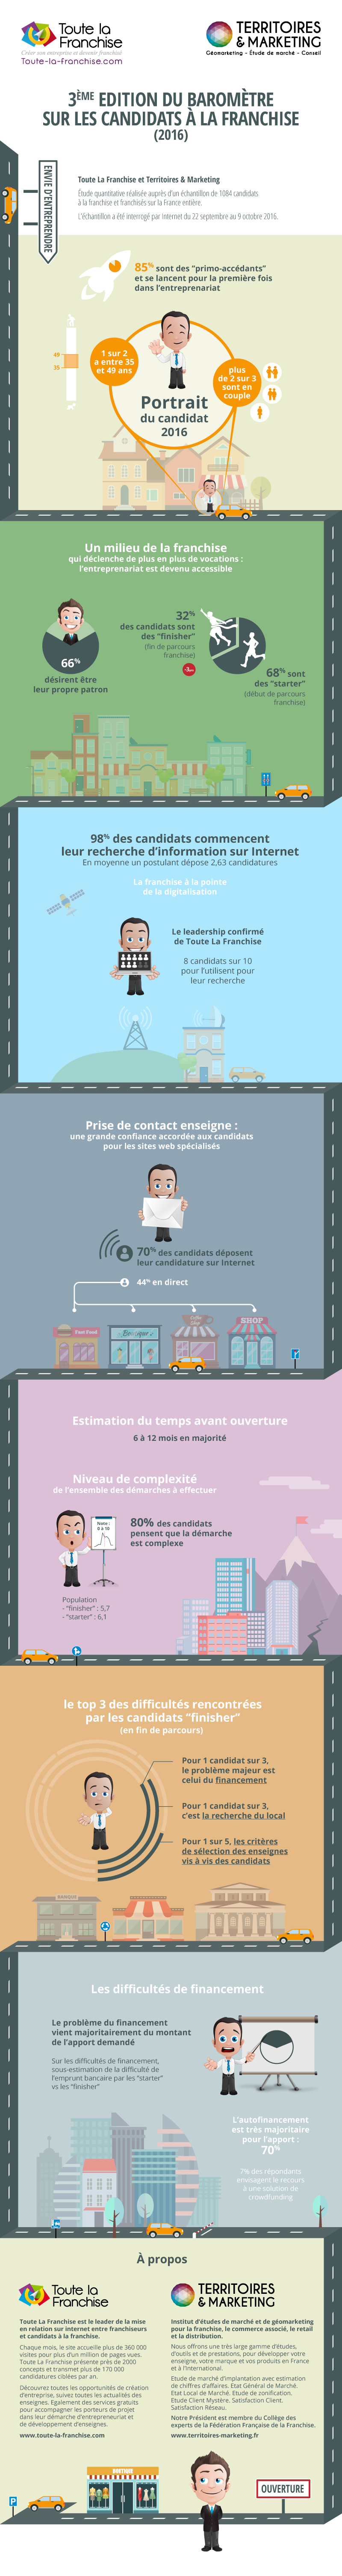 infographie de la franchise TLF Territoires et marketing 2016